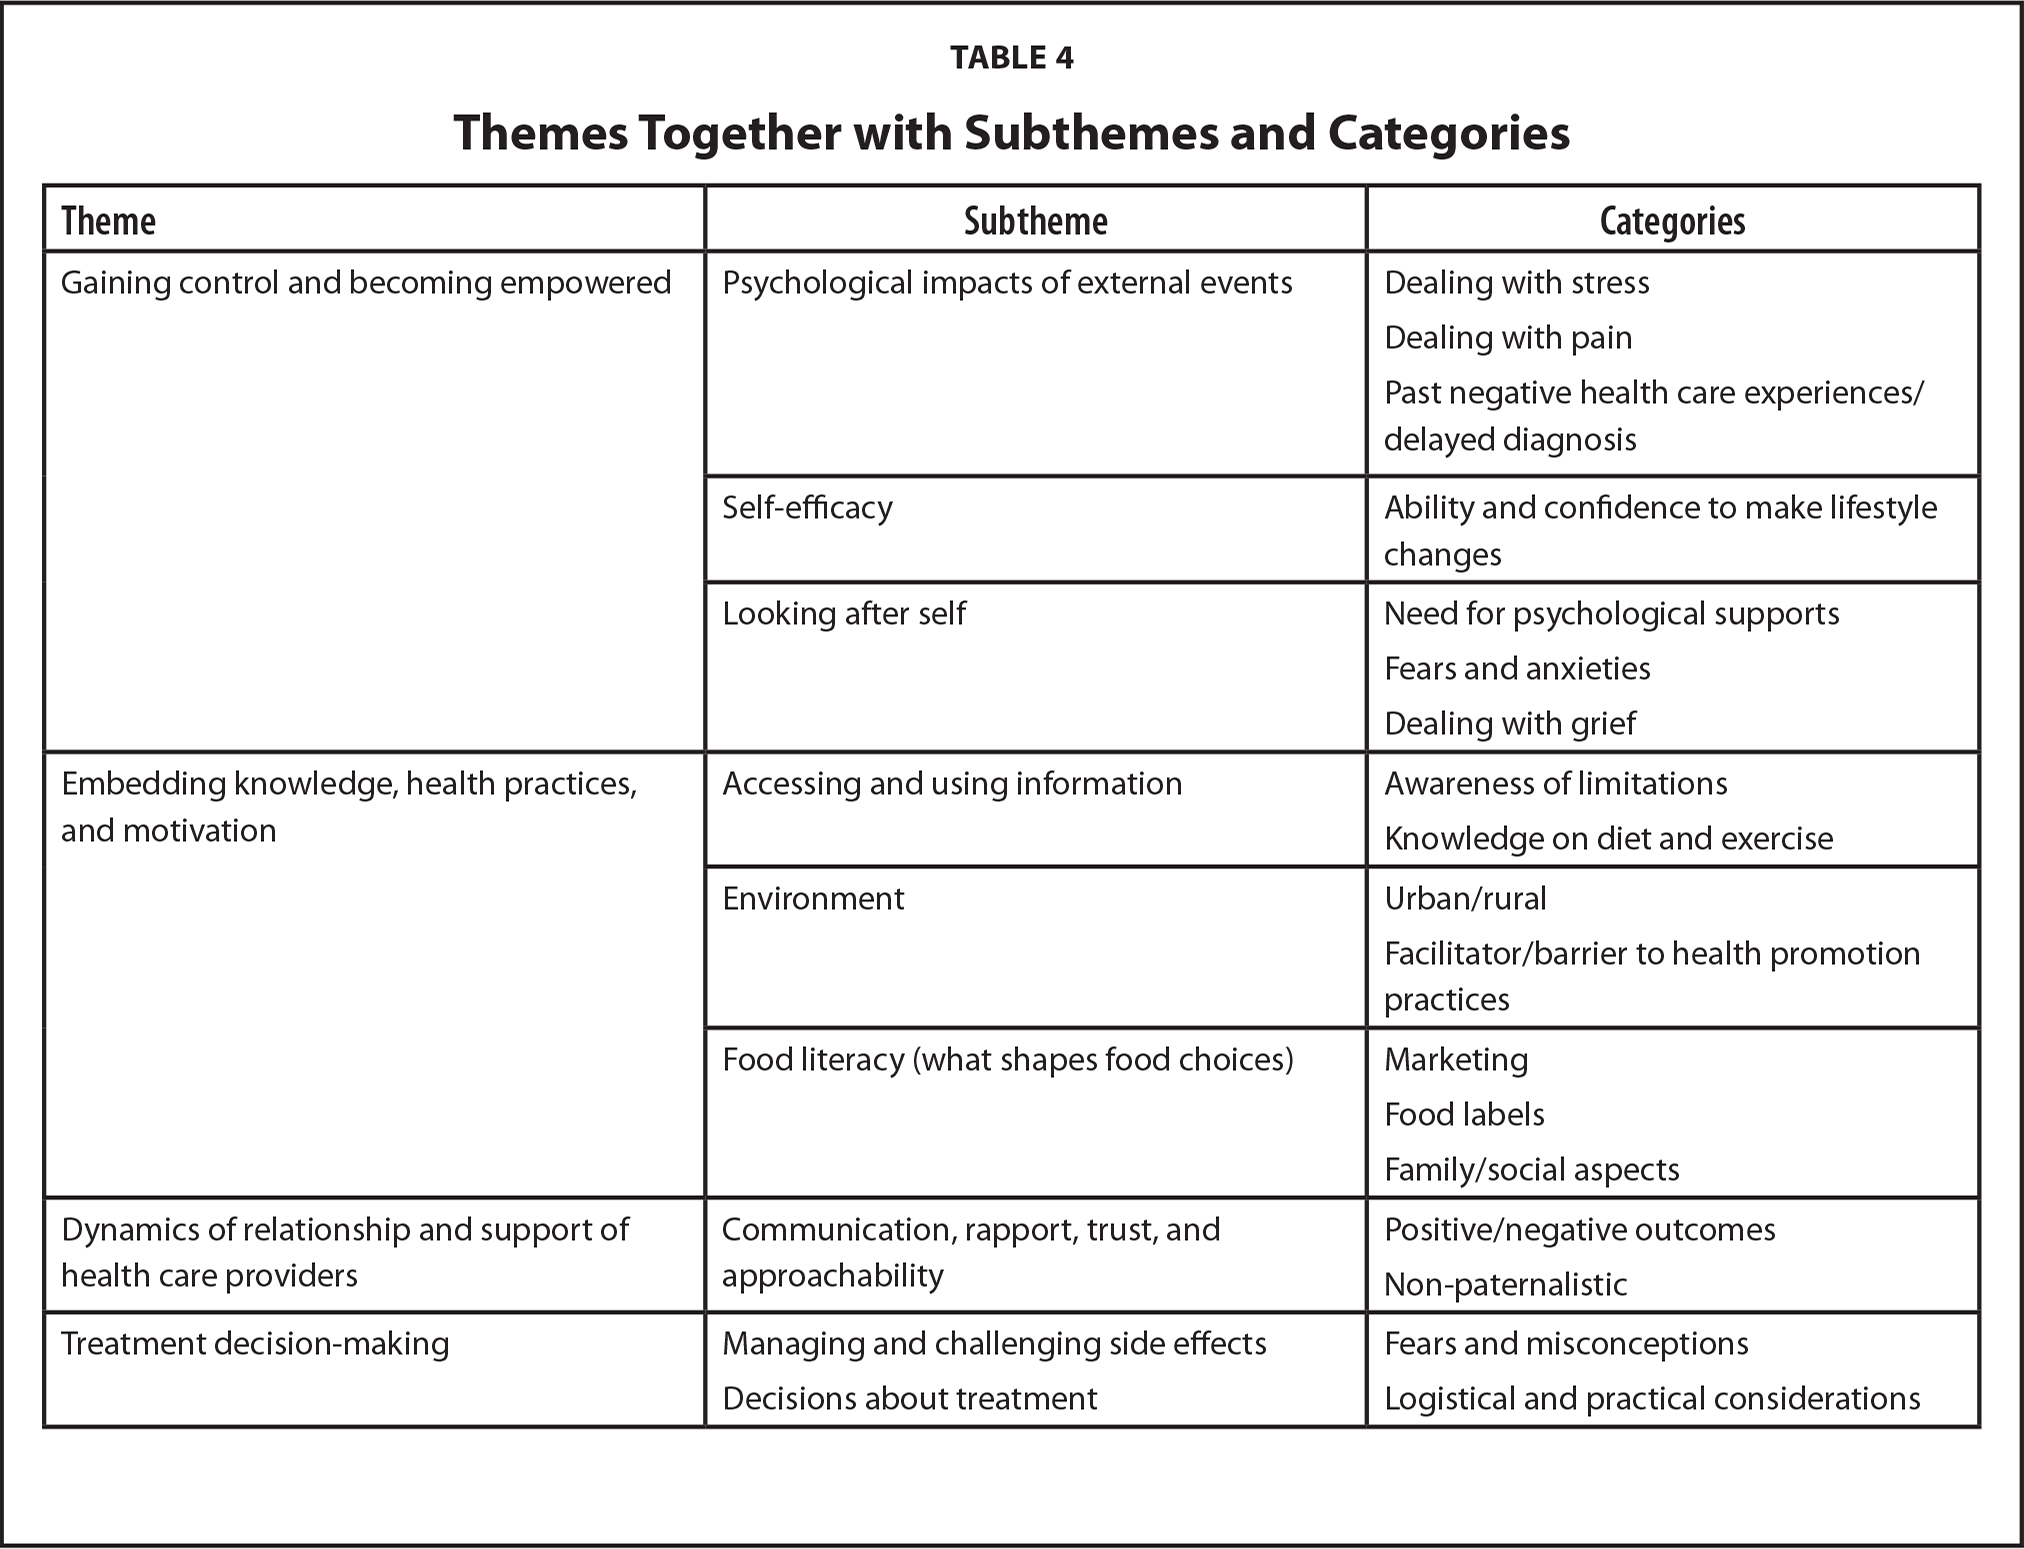 Themes Together with Subthemes and Categories